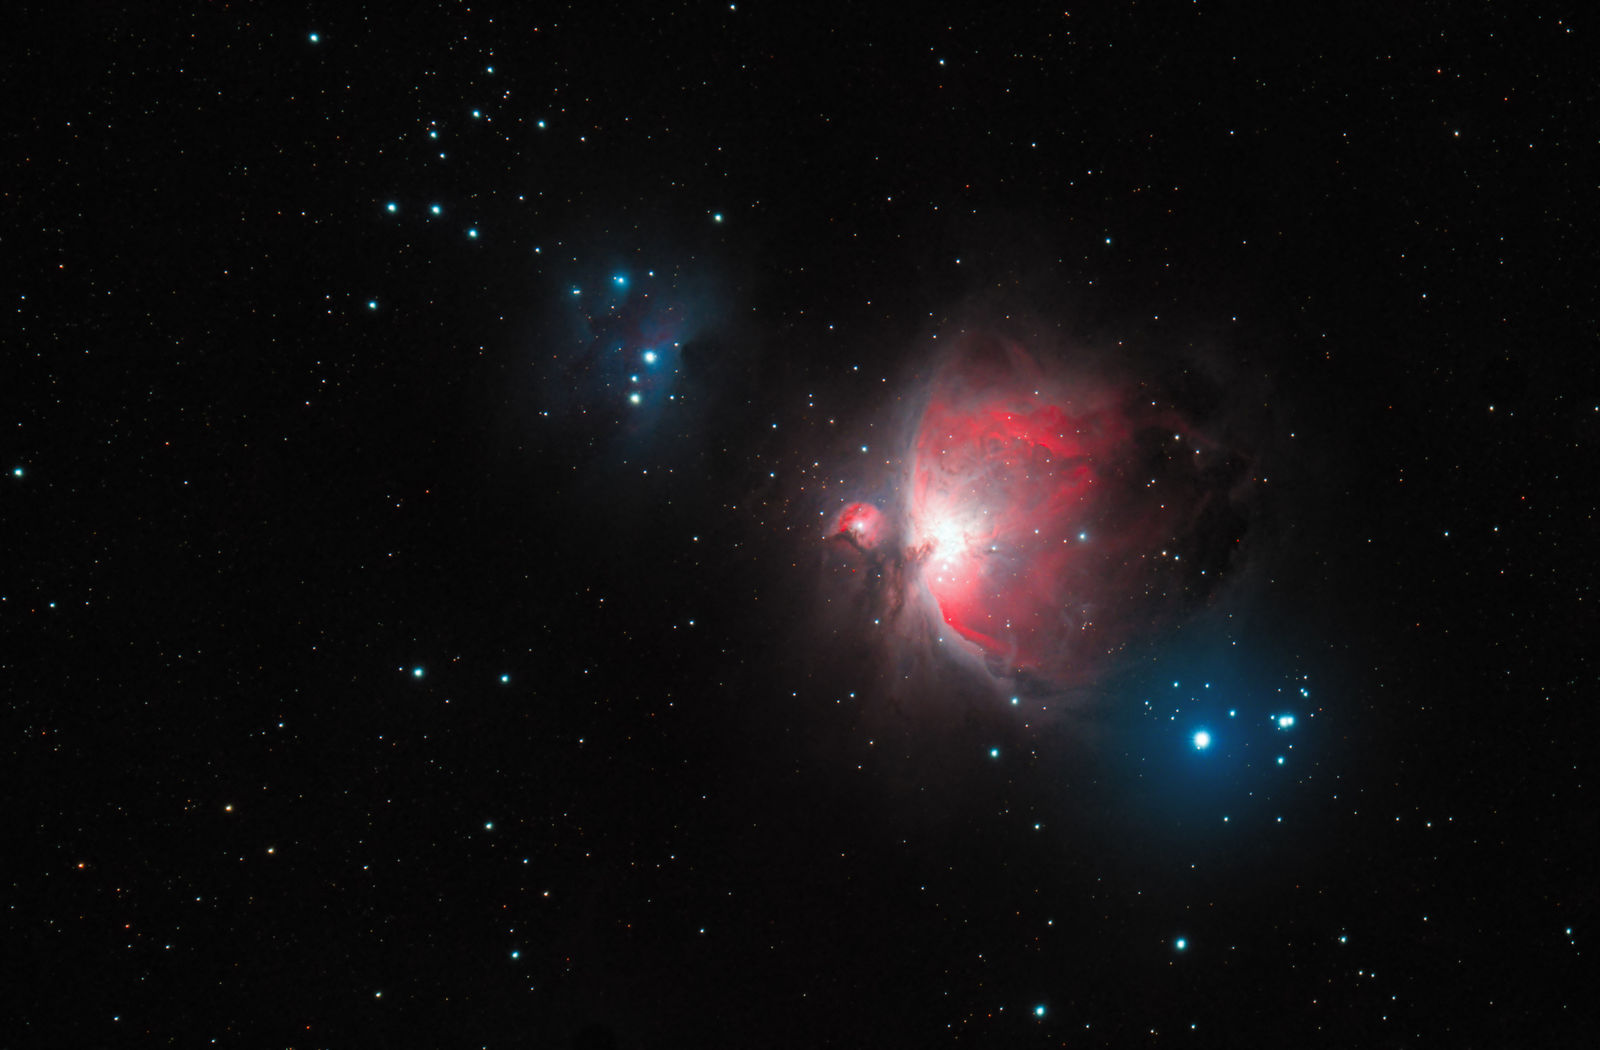 M42 from my Bortle 6 backyard